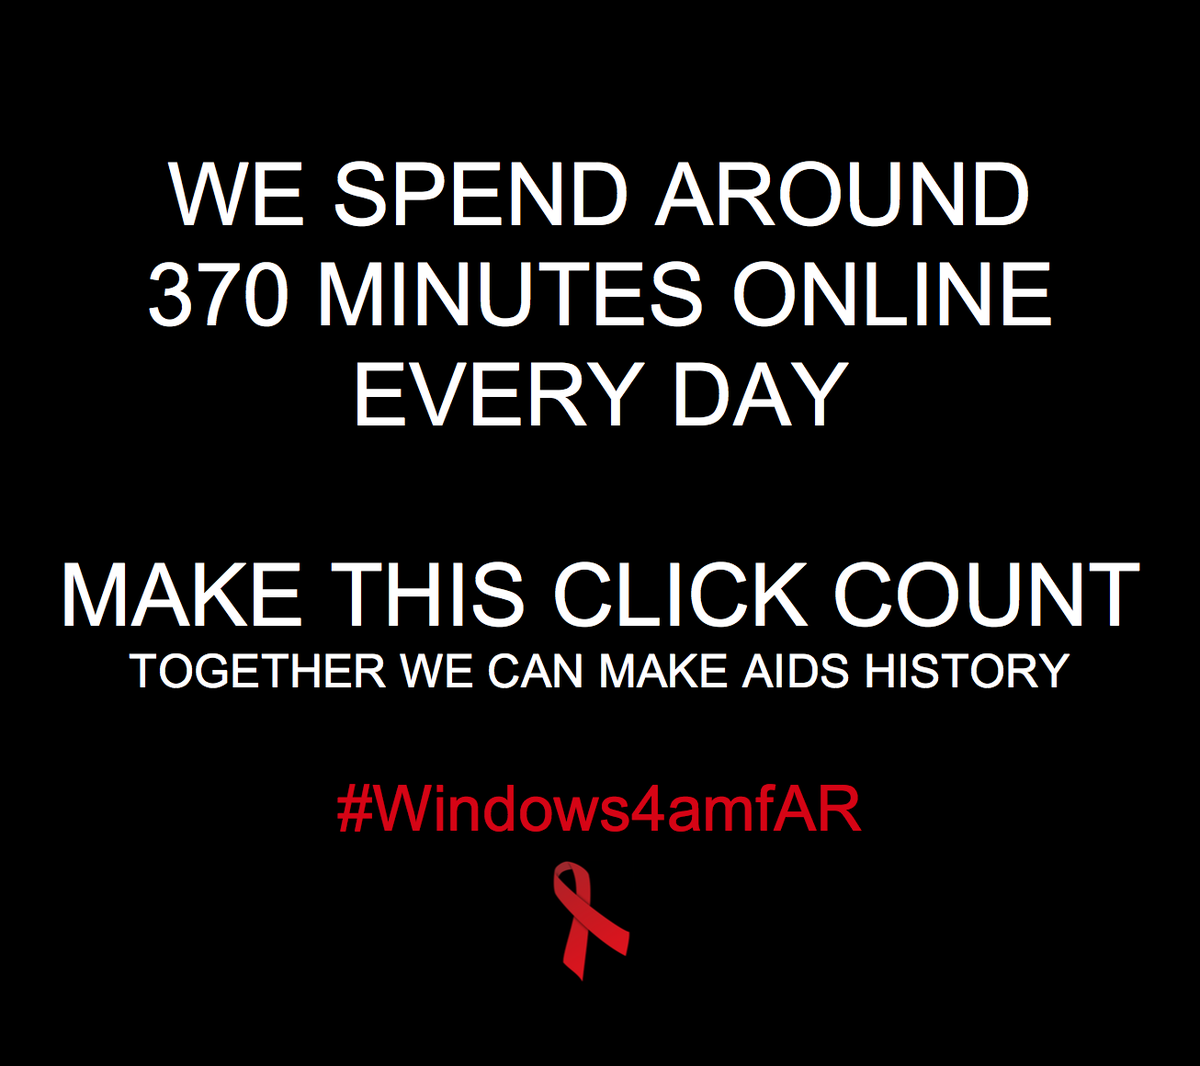 .@Windows will direct $1 for each RT to support our fight against AIDS (up to 25k). #amfARInspiration #Windows4amfAR https://t.co/JopAl0xe56